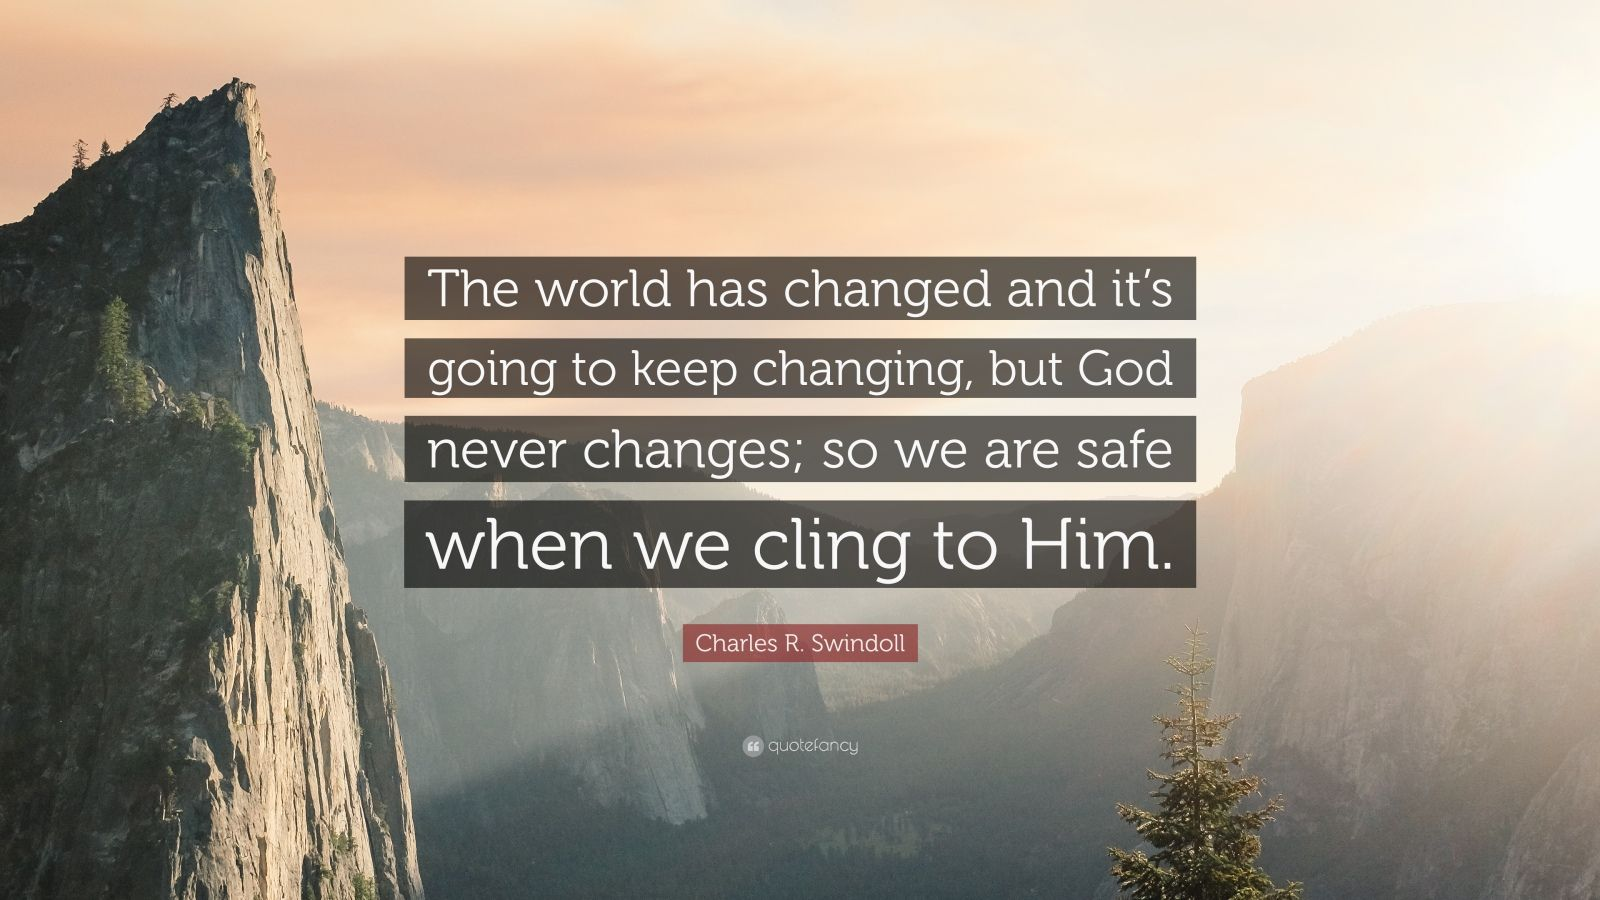 """Charles R. Swindoll Quote: """"The world has changed and it's going to keep changing, but God never changes; so we are safe when we cling to Him."""""""